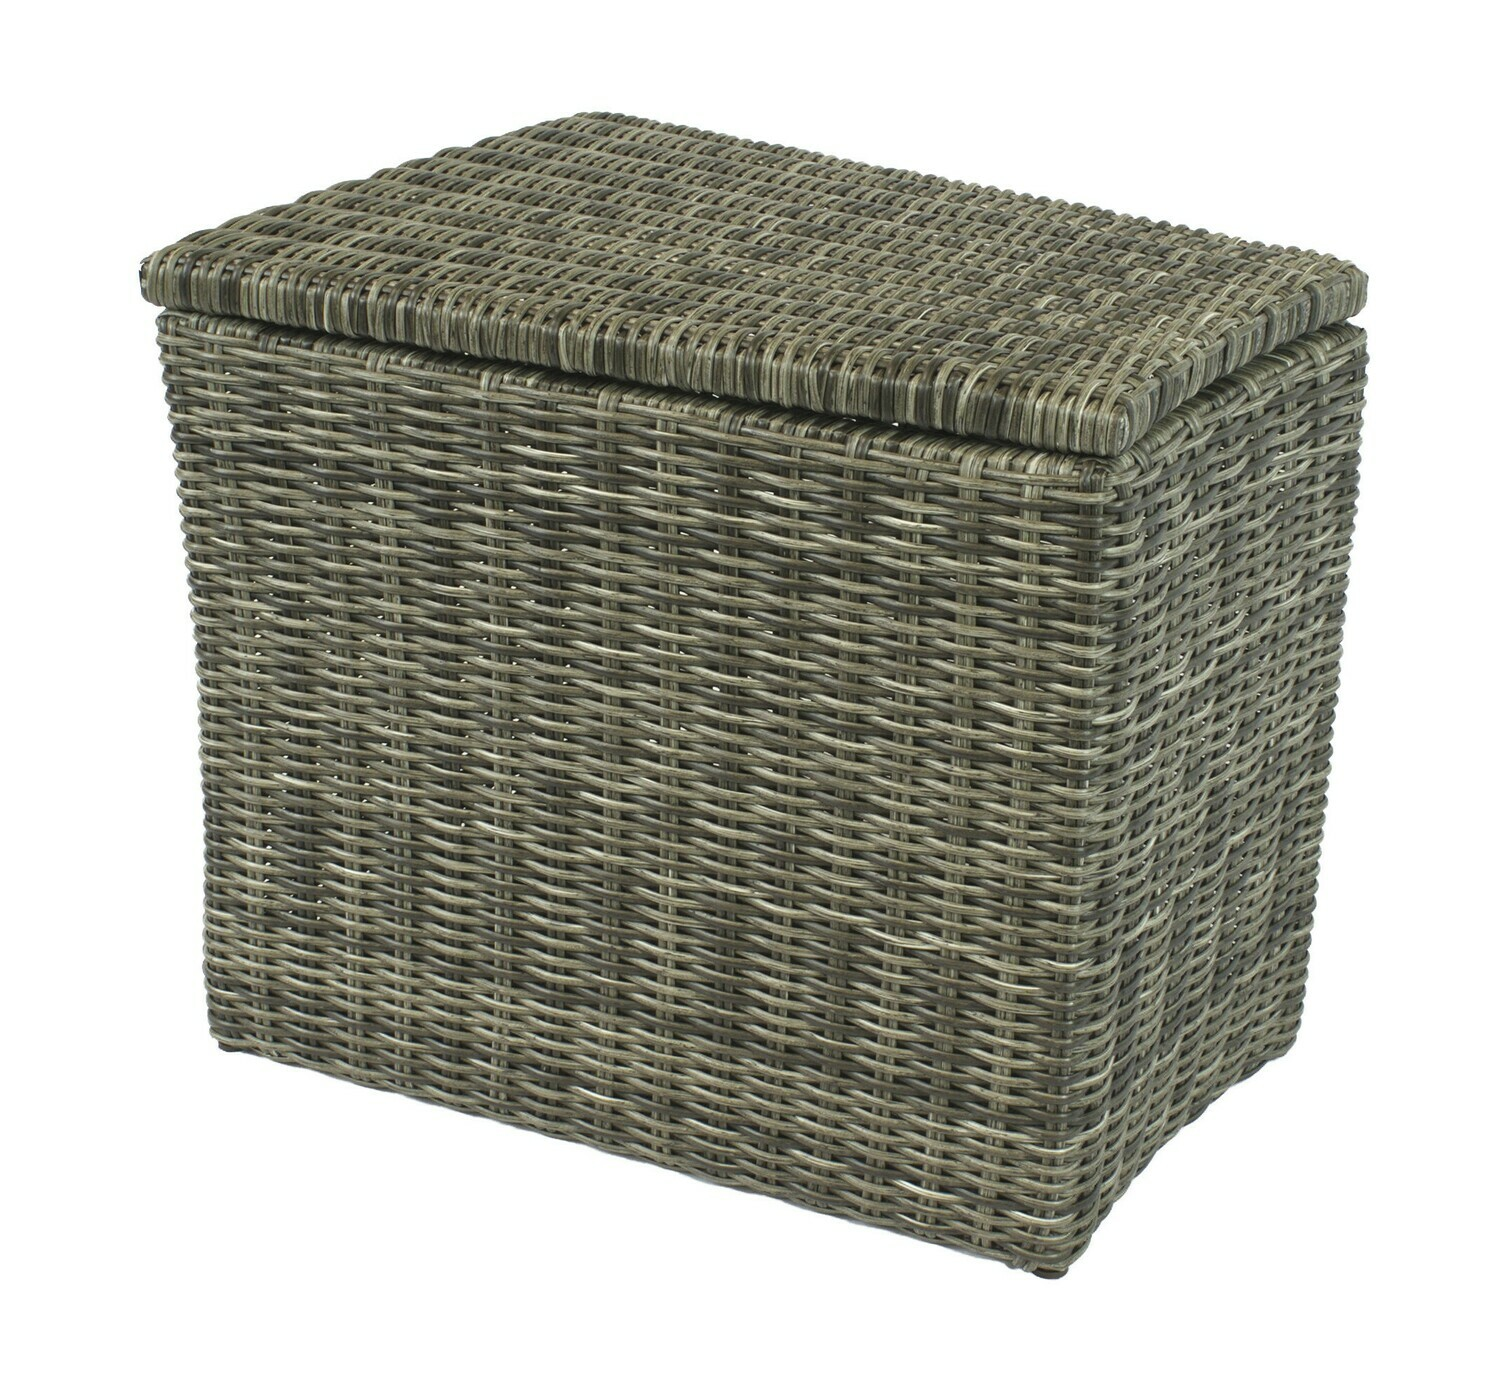 Allegro Wicker Collection Wedge Table with Storage